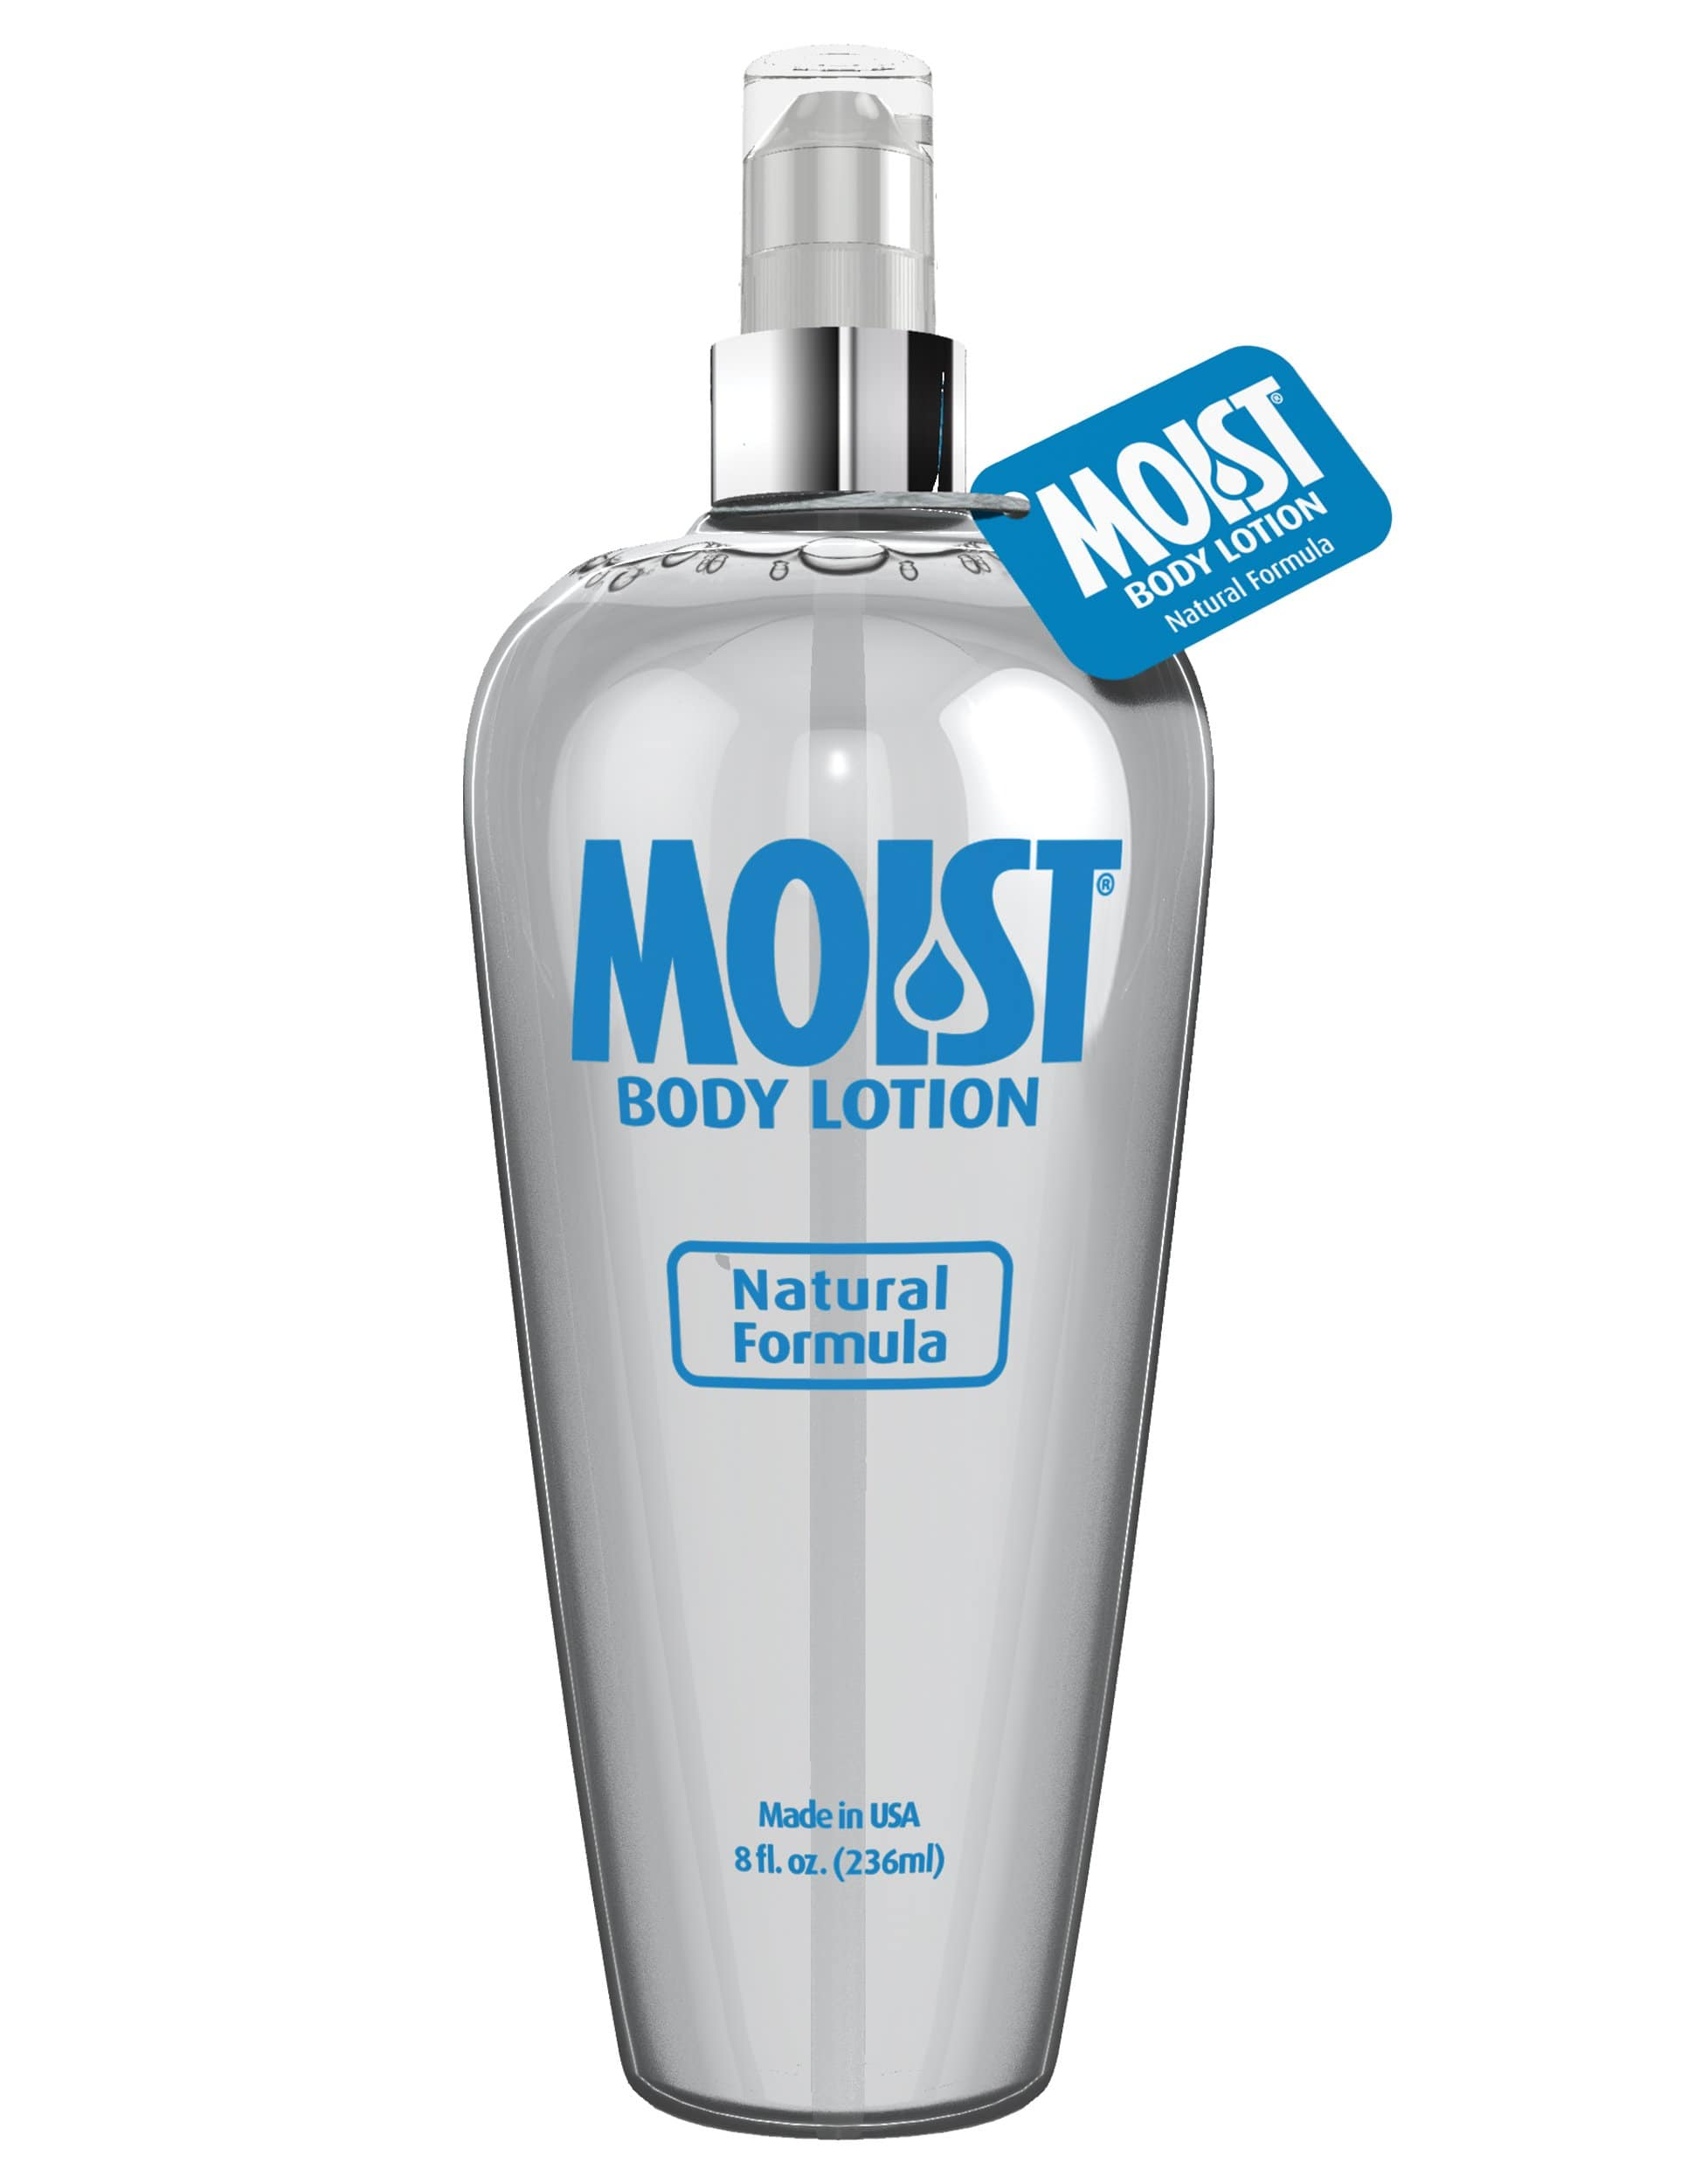 Moist Personal Lubricant - 8 fl. oz. - Sale BDSM, Bondage Gear, Adult Toys, Bondage Sex, Orgasm Belt, Male Chastity, Bondage Gag. Bondage Slave Collars, Wrist Cuffs, Submissive, Dominant, Master, Mistress, Cross Dressing, Sex Toys, Bondage Sale, Bondage Clearance, MEGA Deal Bondage, Sub-Shop Bondage and Fetish Superstore